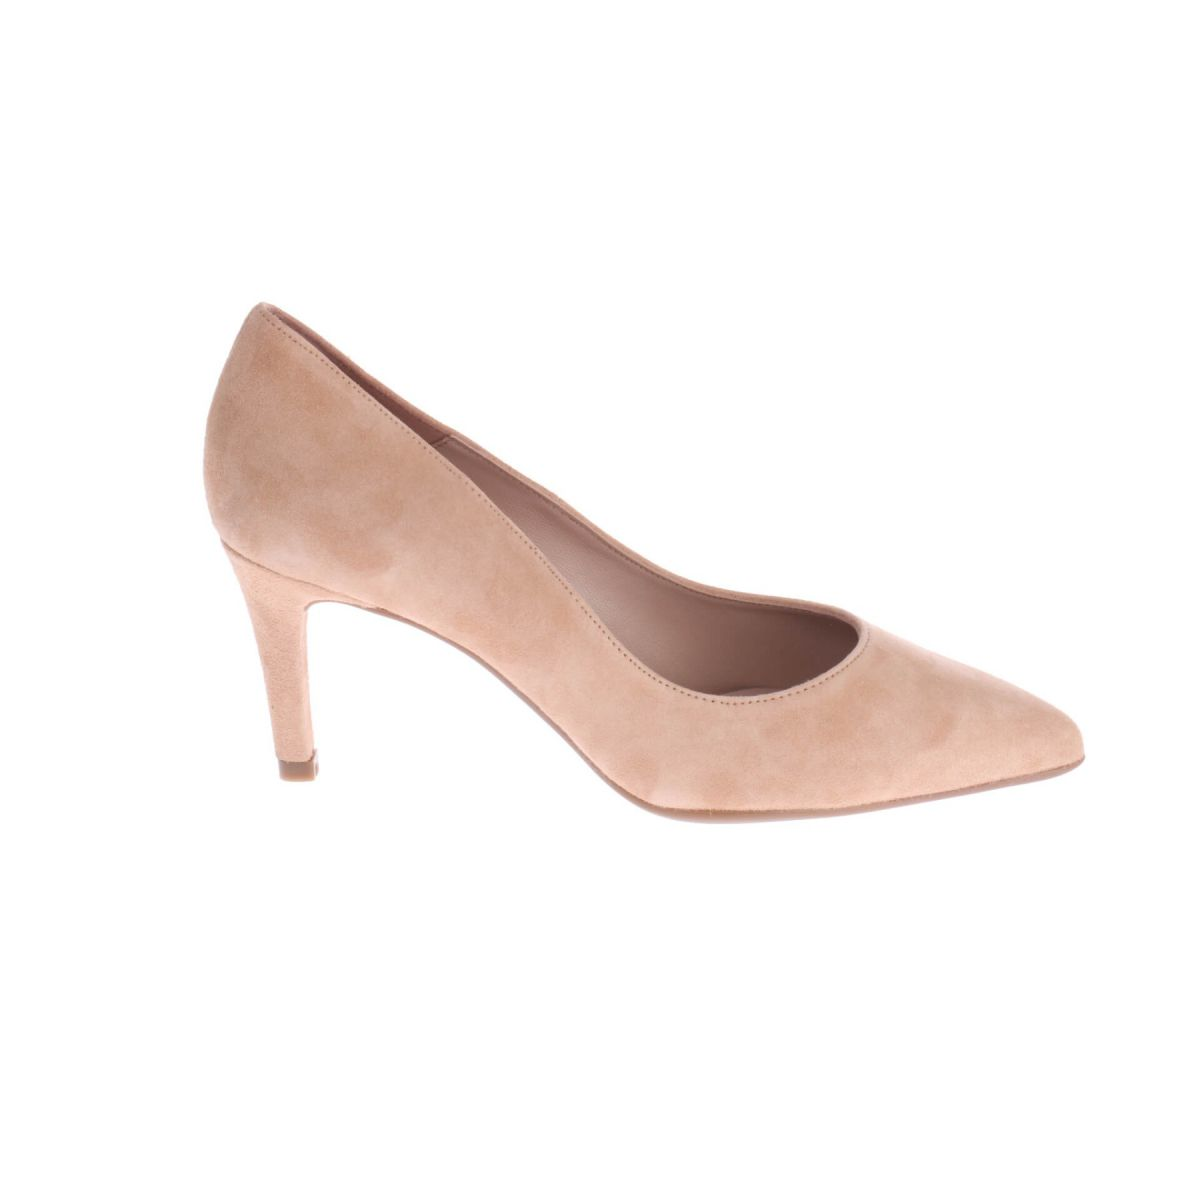 Catwalk Vadele Natural Pumps Beige